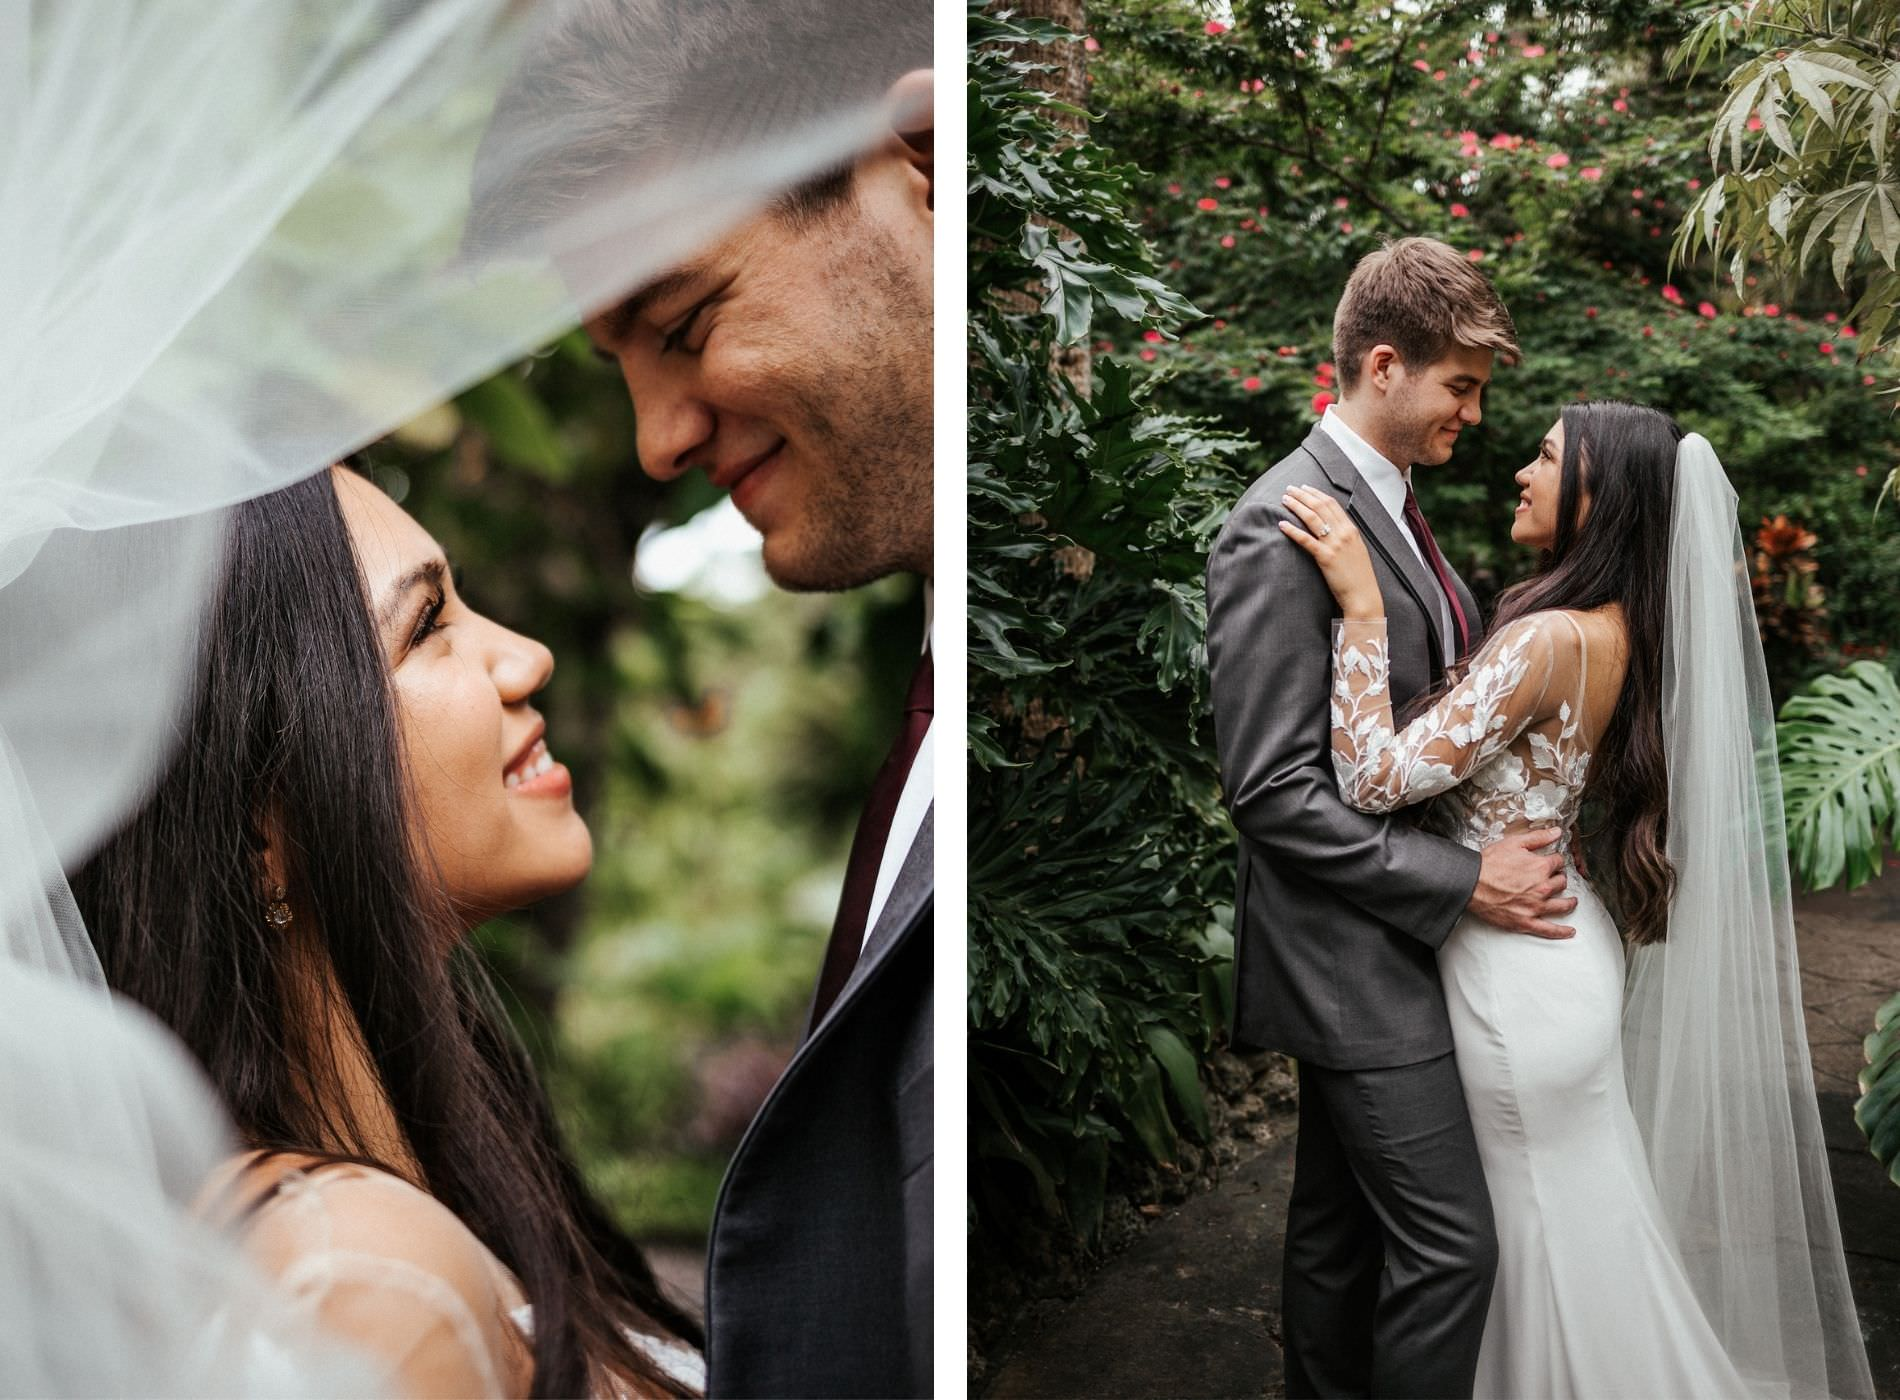 Tropical Elegant Inspired Florida Bride and Groom at Sunken Gardens in St. Petersburg, Bride Wearing White BHLDN Wedding Dress with Long Illusion Lace Sleeves and Flowy Veil | Tampa Bay Wedding Planner John Campbell Weddings